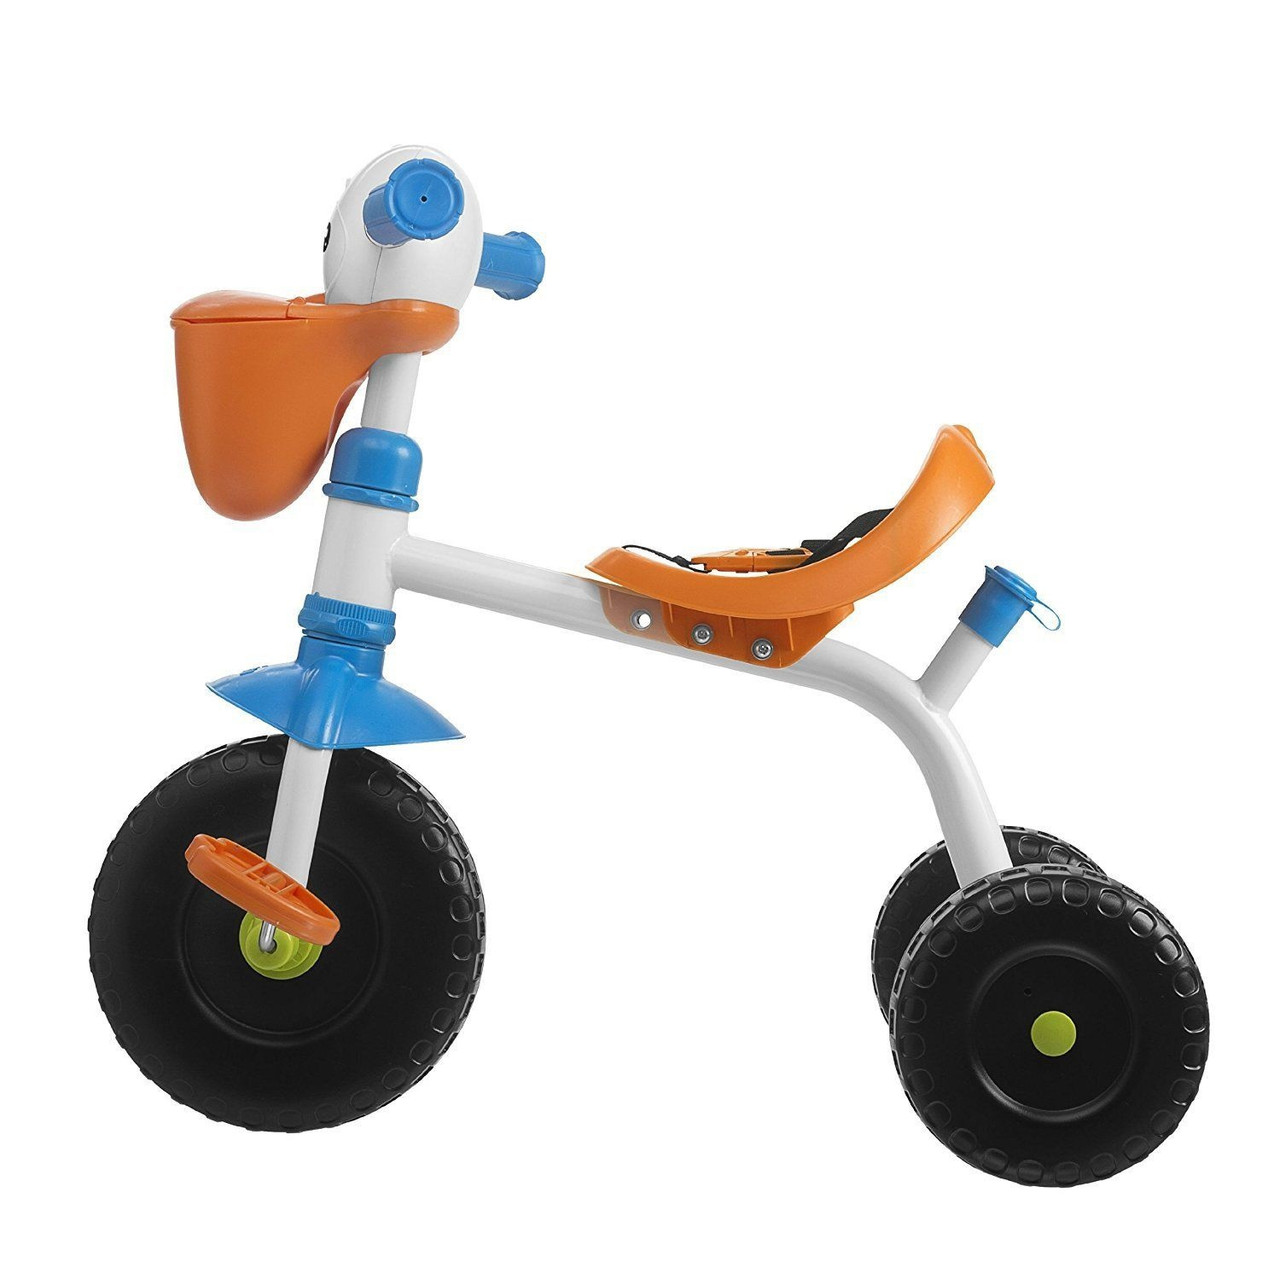 Chicco Toy Ride On 2 in 1 Pelican Trike at Baby Barn Discounts Chicco Pelican Trike 2 IN 1 Funny tricycle with the beak of a funny pelican and pedals with the shape of his paws.